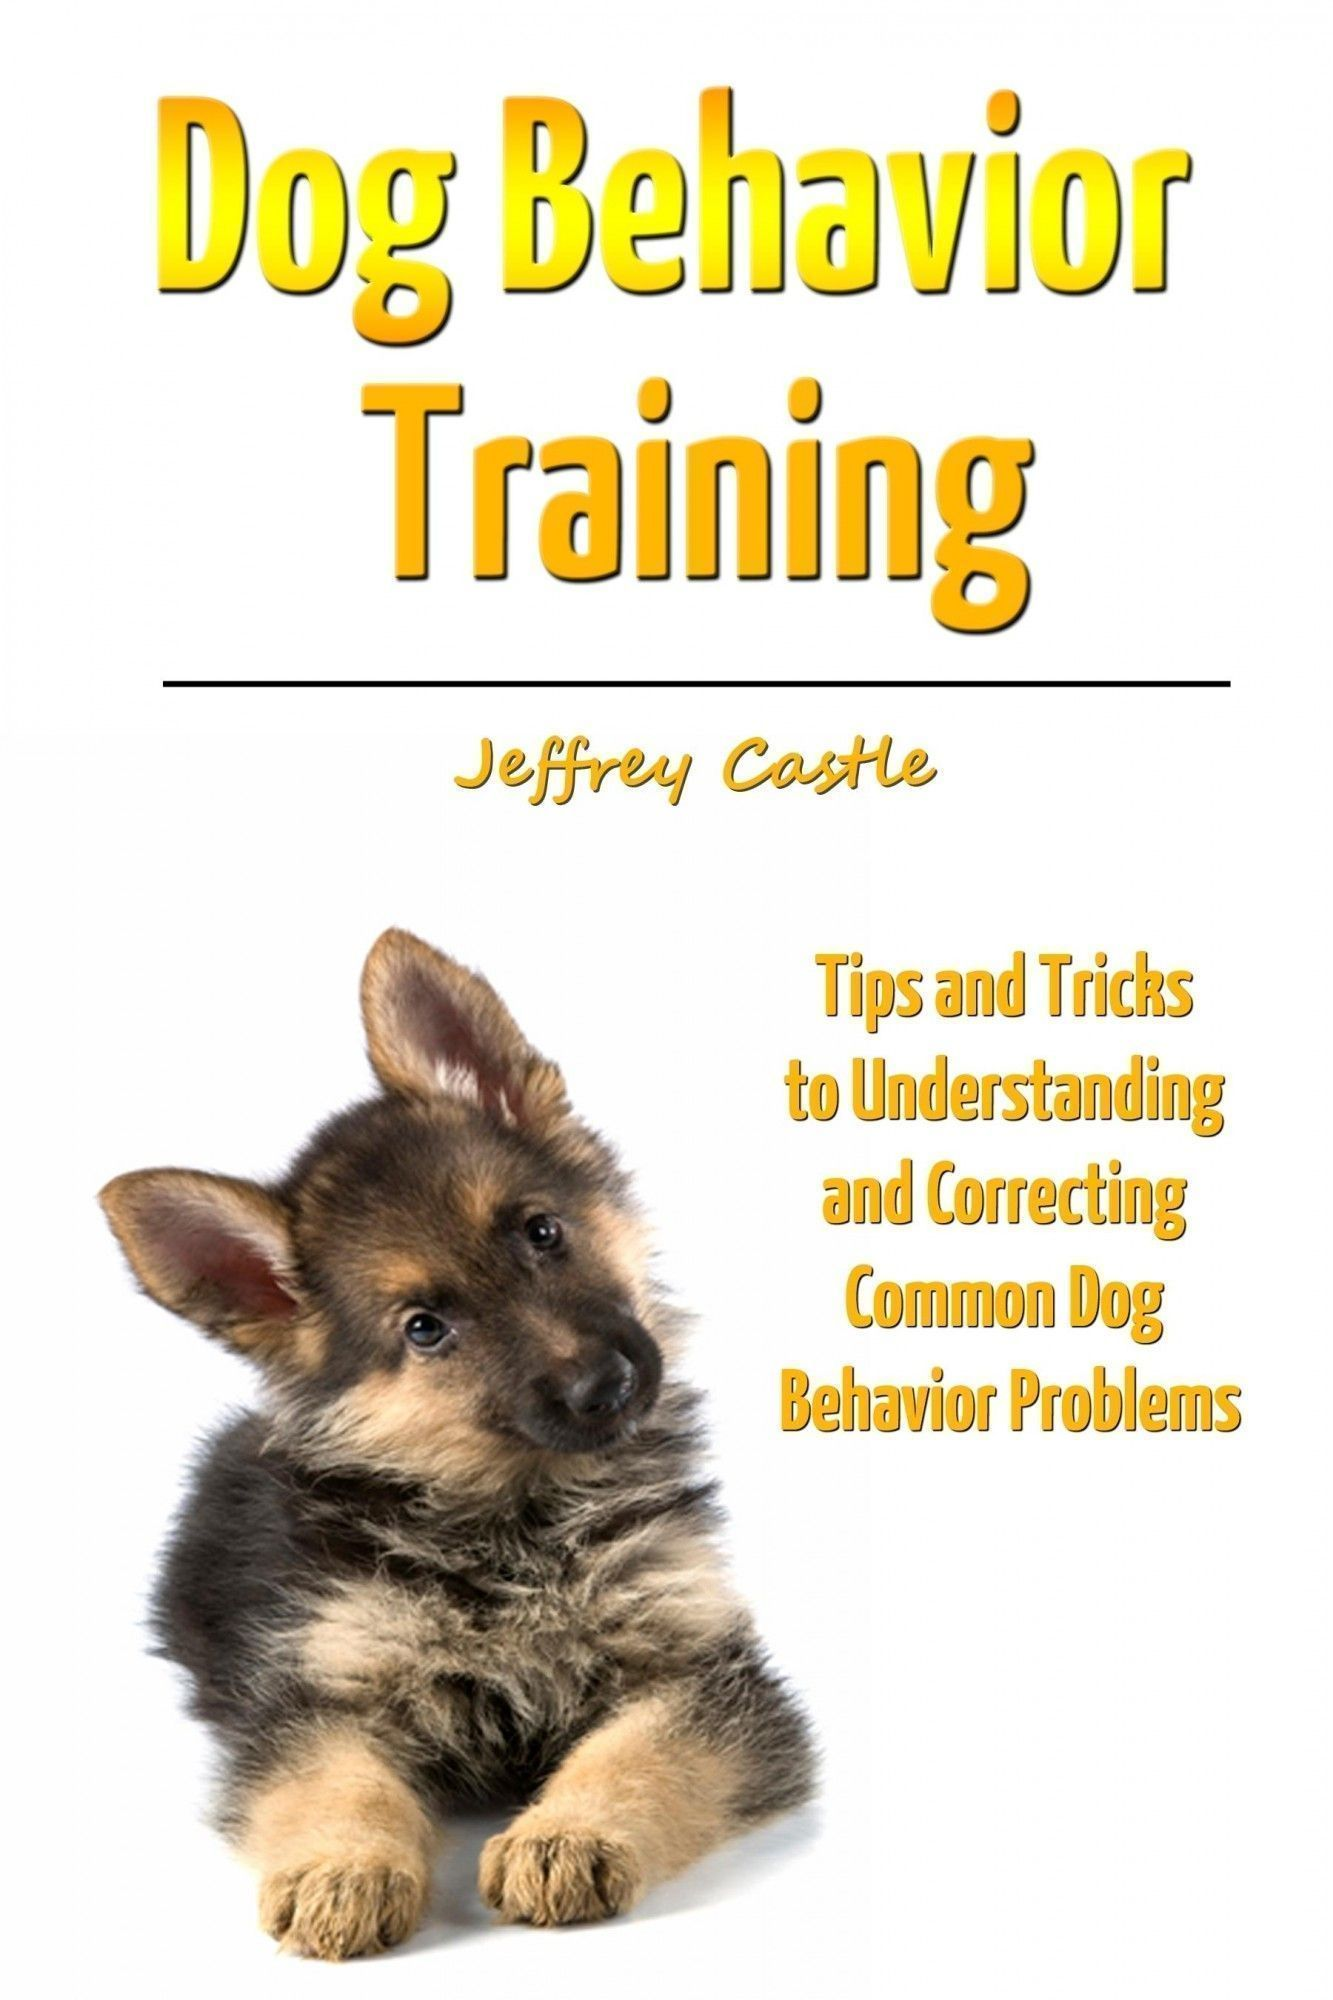 Dog behavior problems training tips check this useful